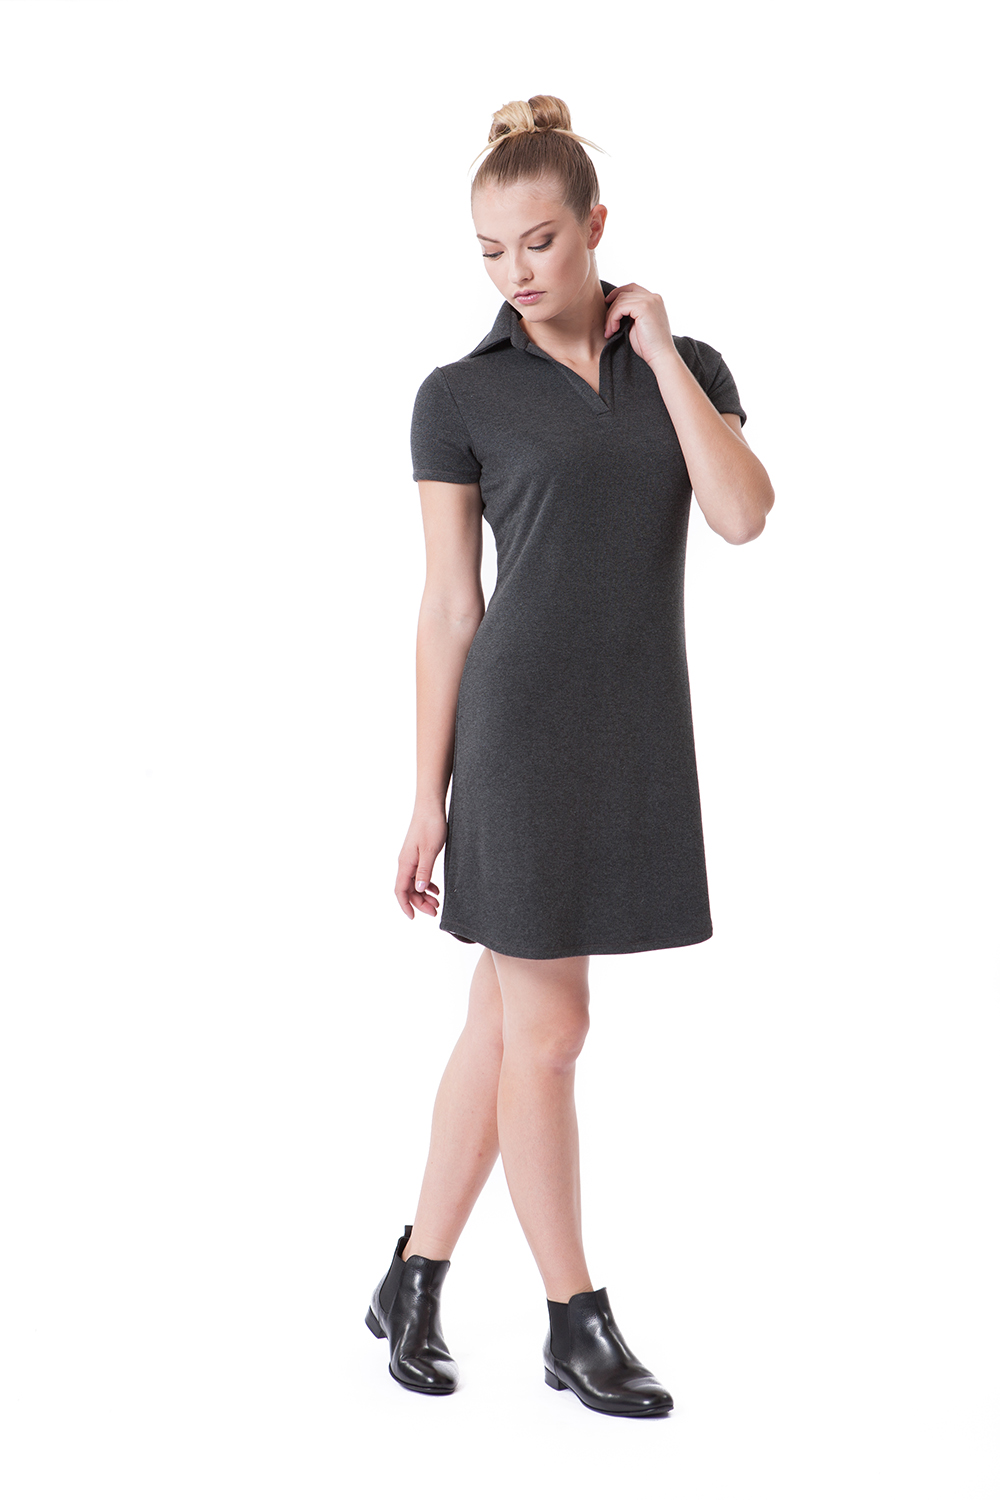 BUKI Polo Dress - BUKI Luxe Sportswear Collection